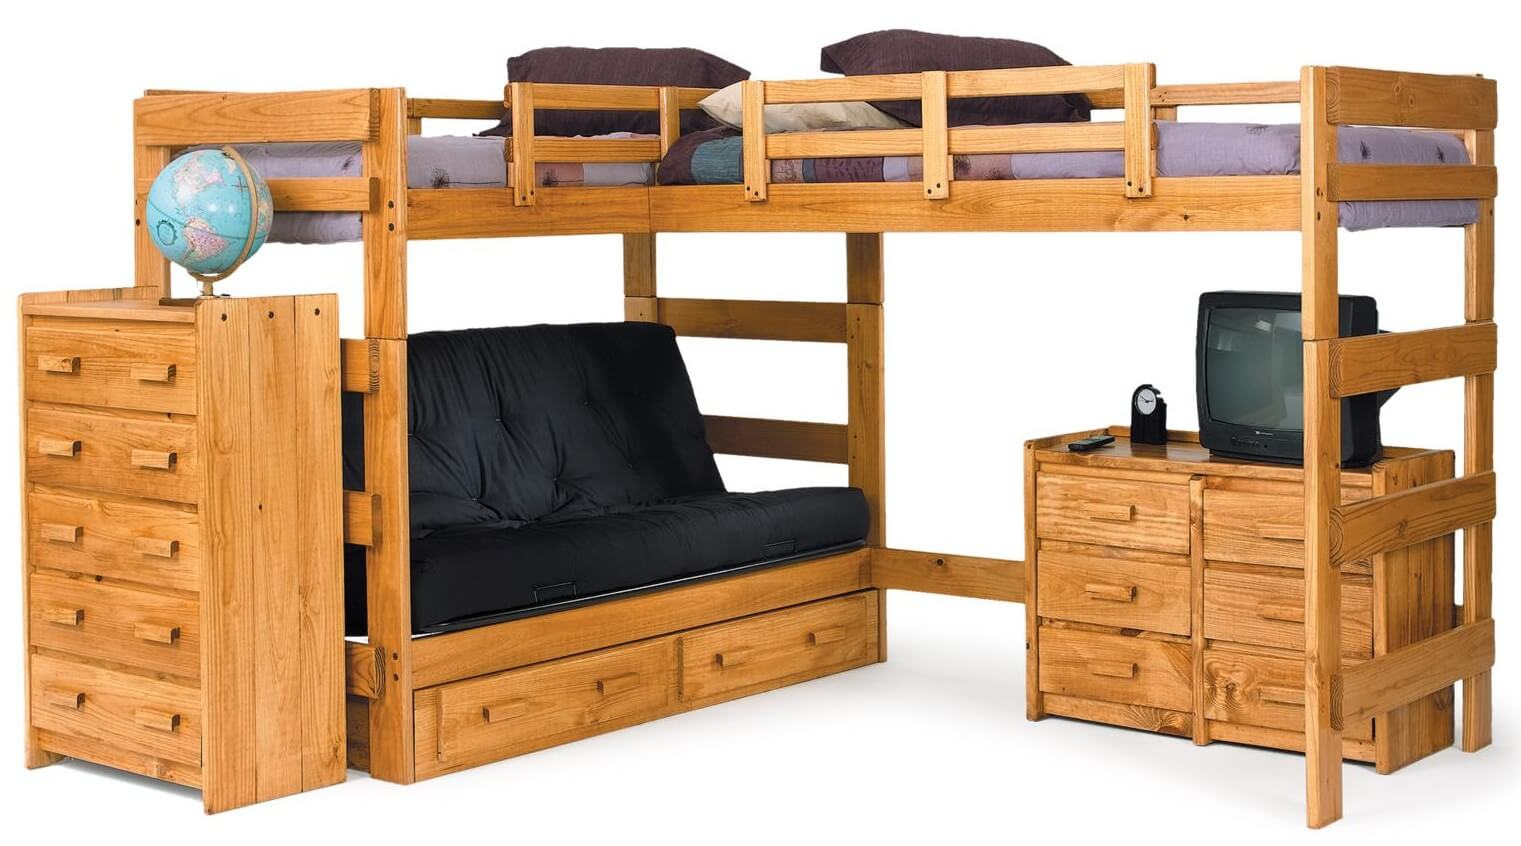 Wood bunk beds with desk - Here S An Example Of An Adjacent L Shape Bunk Design Where The Both Beds Are